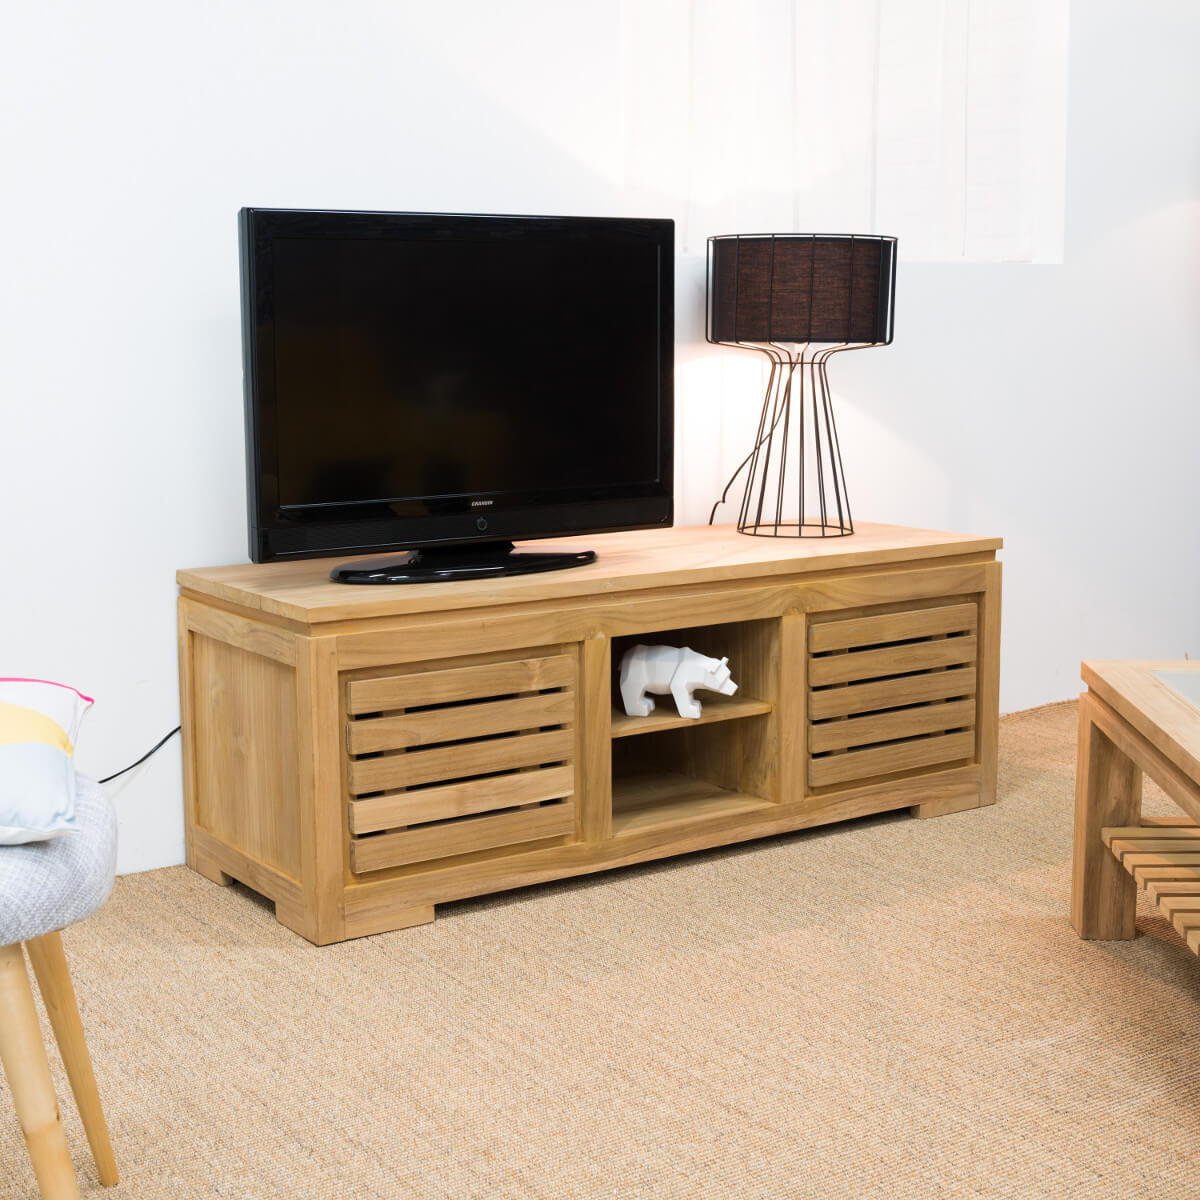 Meuble tv teck meuble tv bois naturel rectangle zen for Meuble tv 75 cm